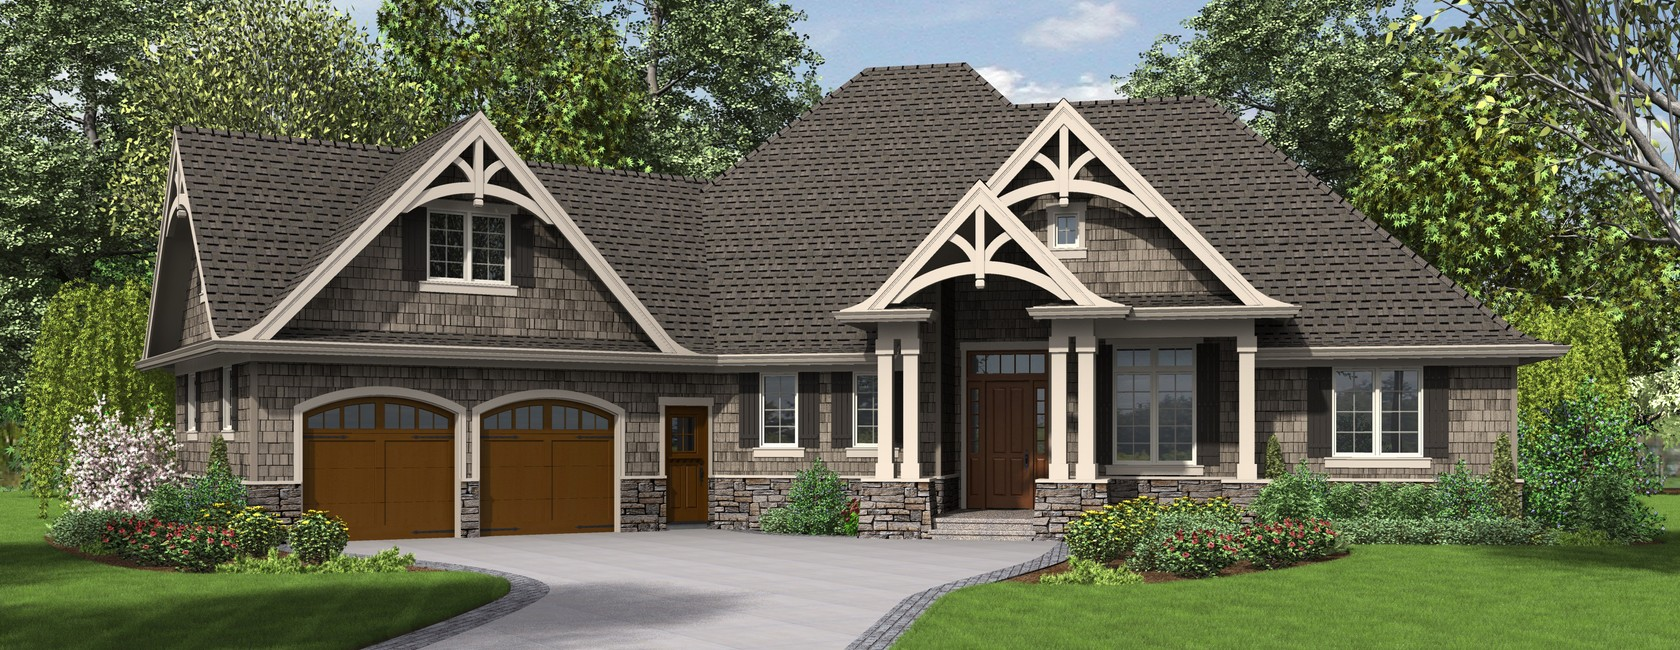 awesome craftsman house plans one story 21 pictures